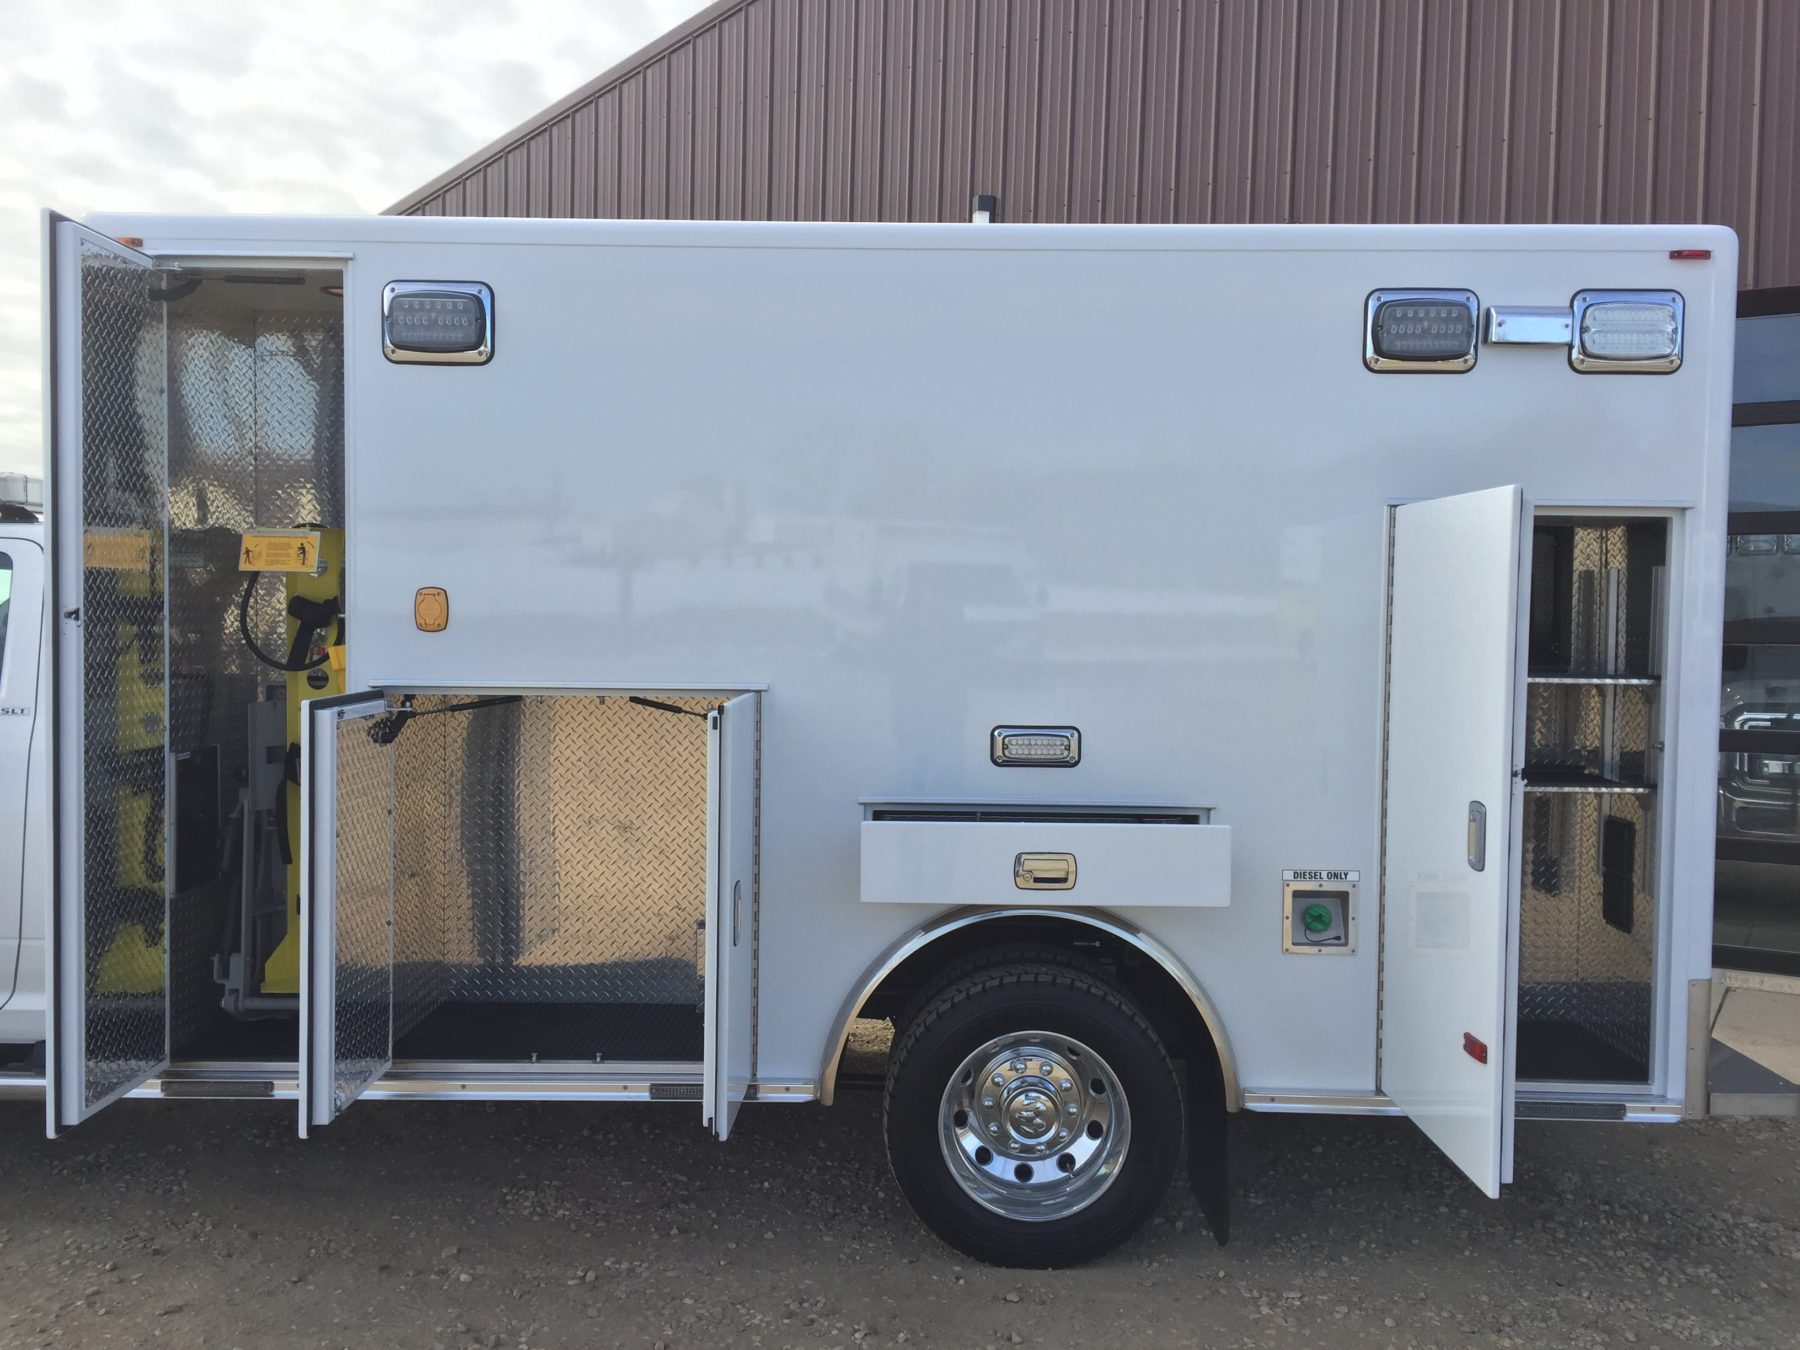 2017 Ram 4500 4x4 Heavy Duty Ambulance For Sale – Picture 6